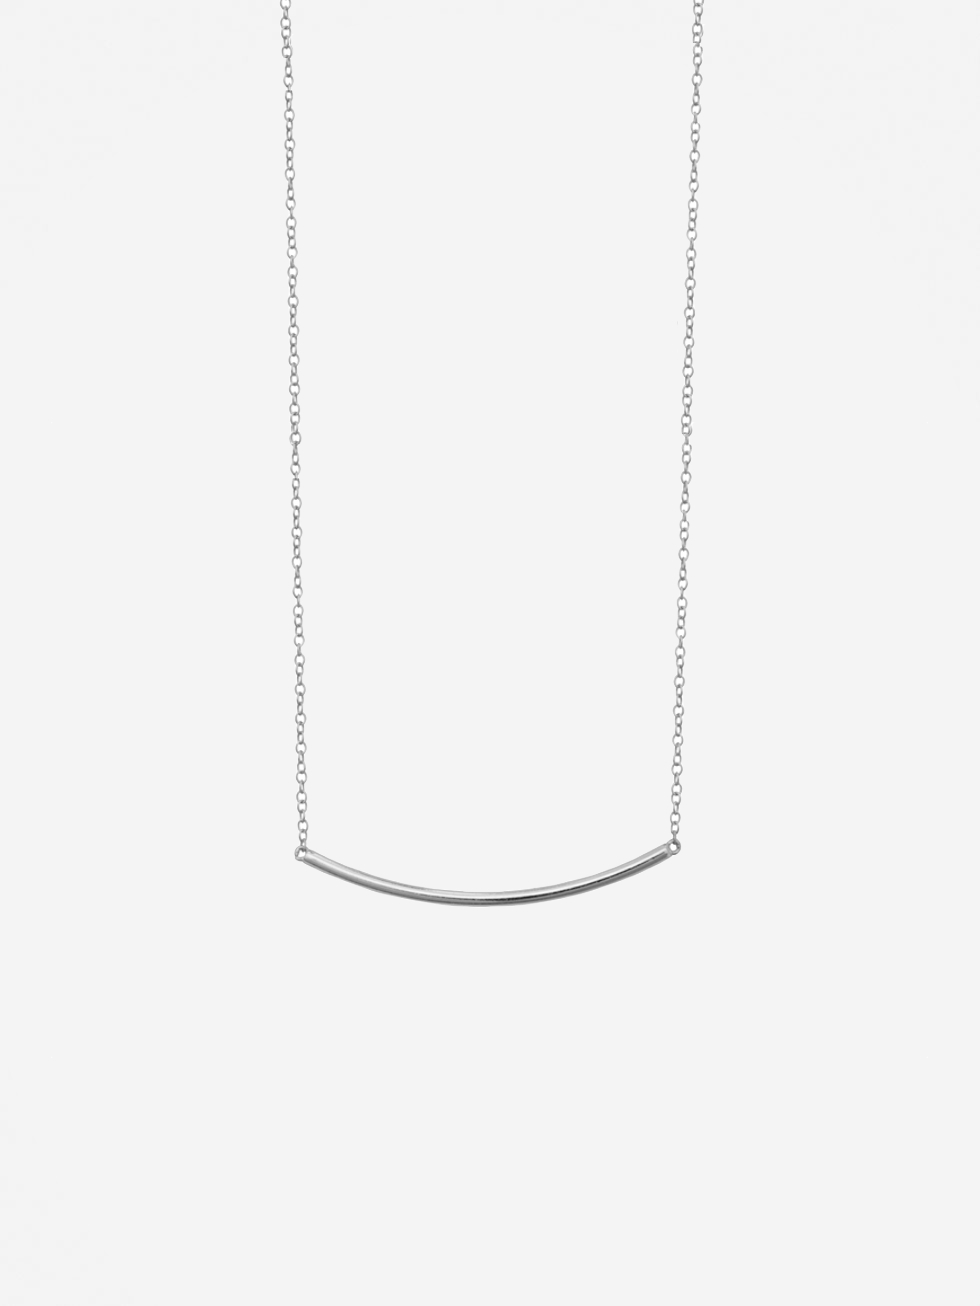 LINE SILVER necklace